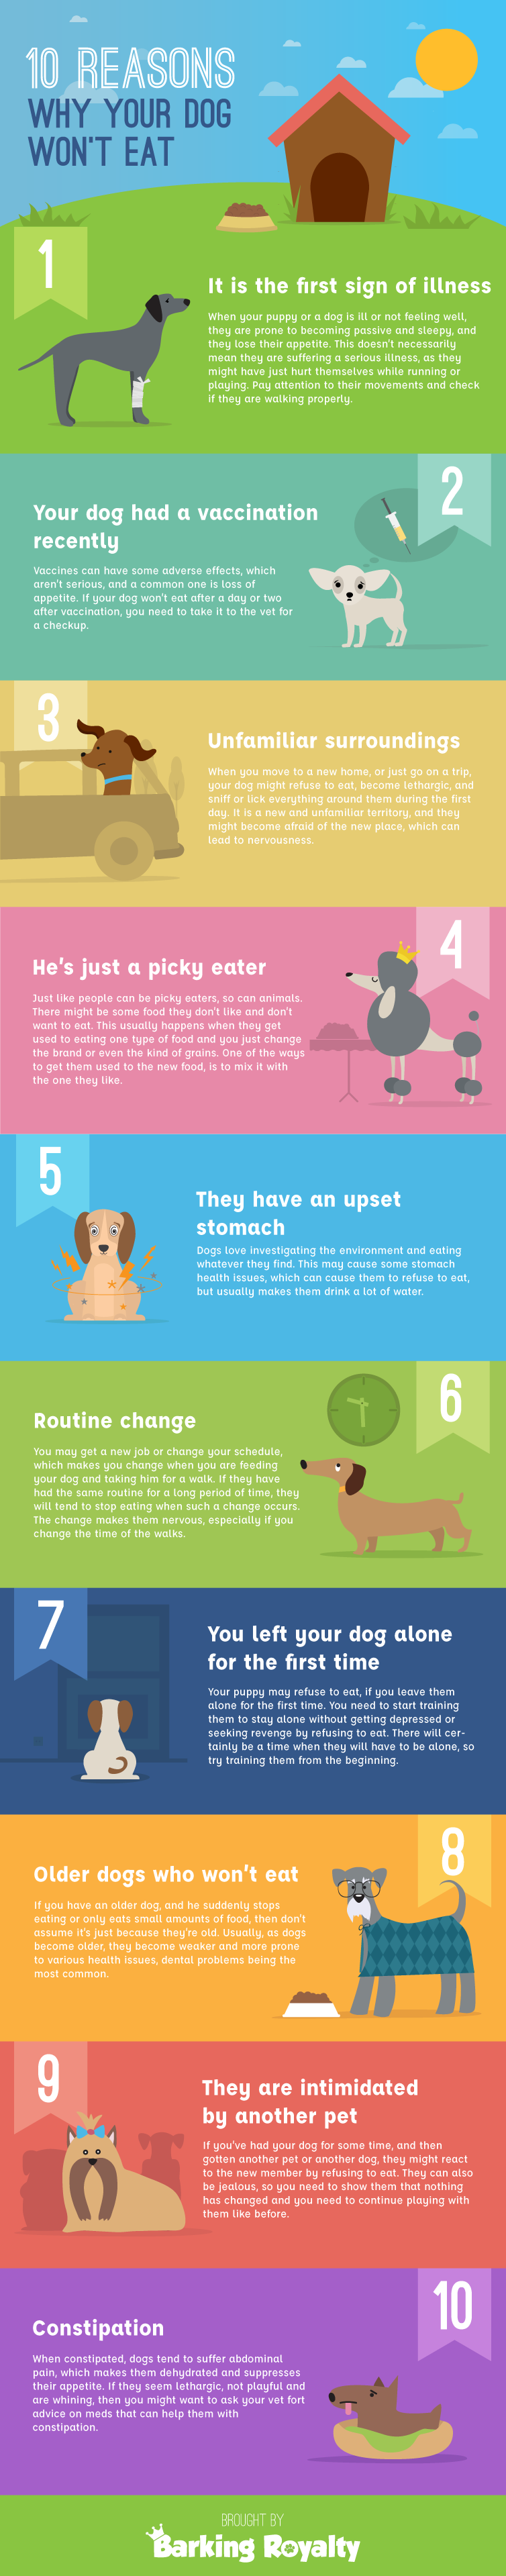 10 reasons why your dog won't eat from Barking Royalty